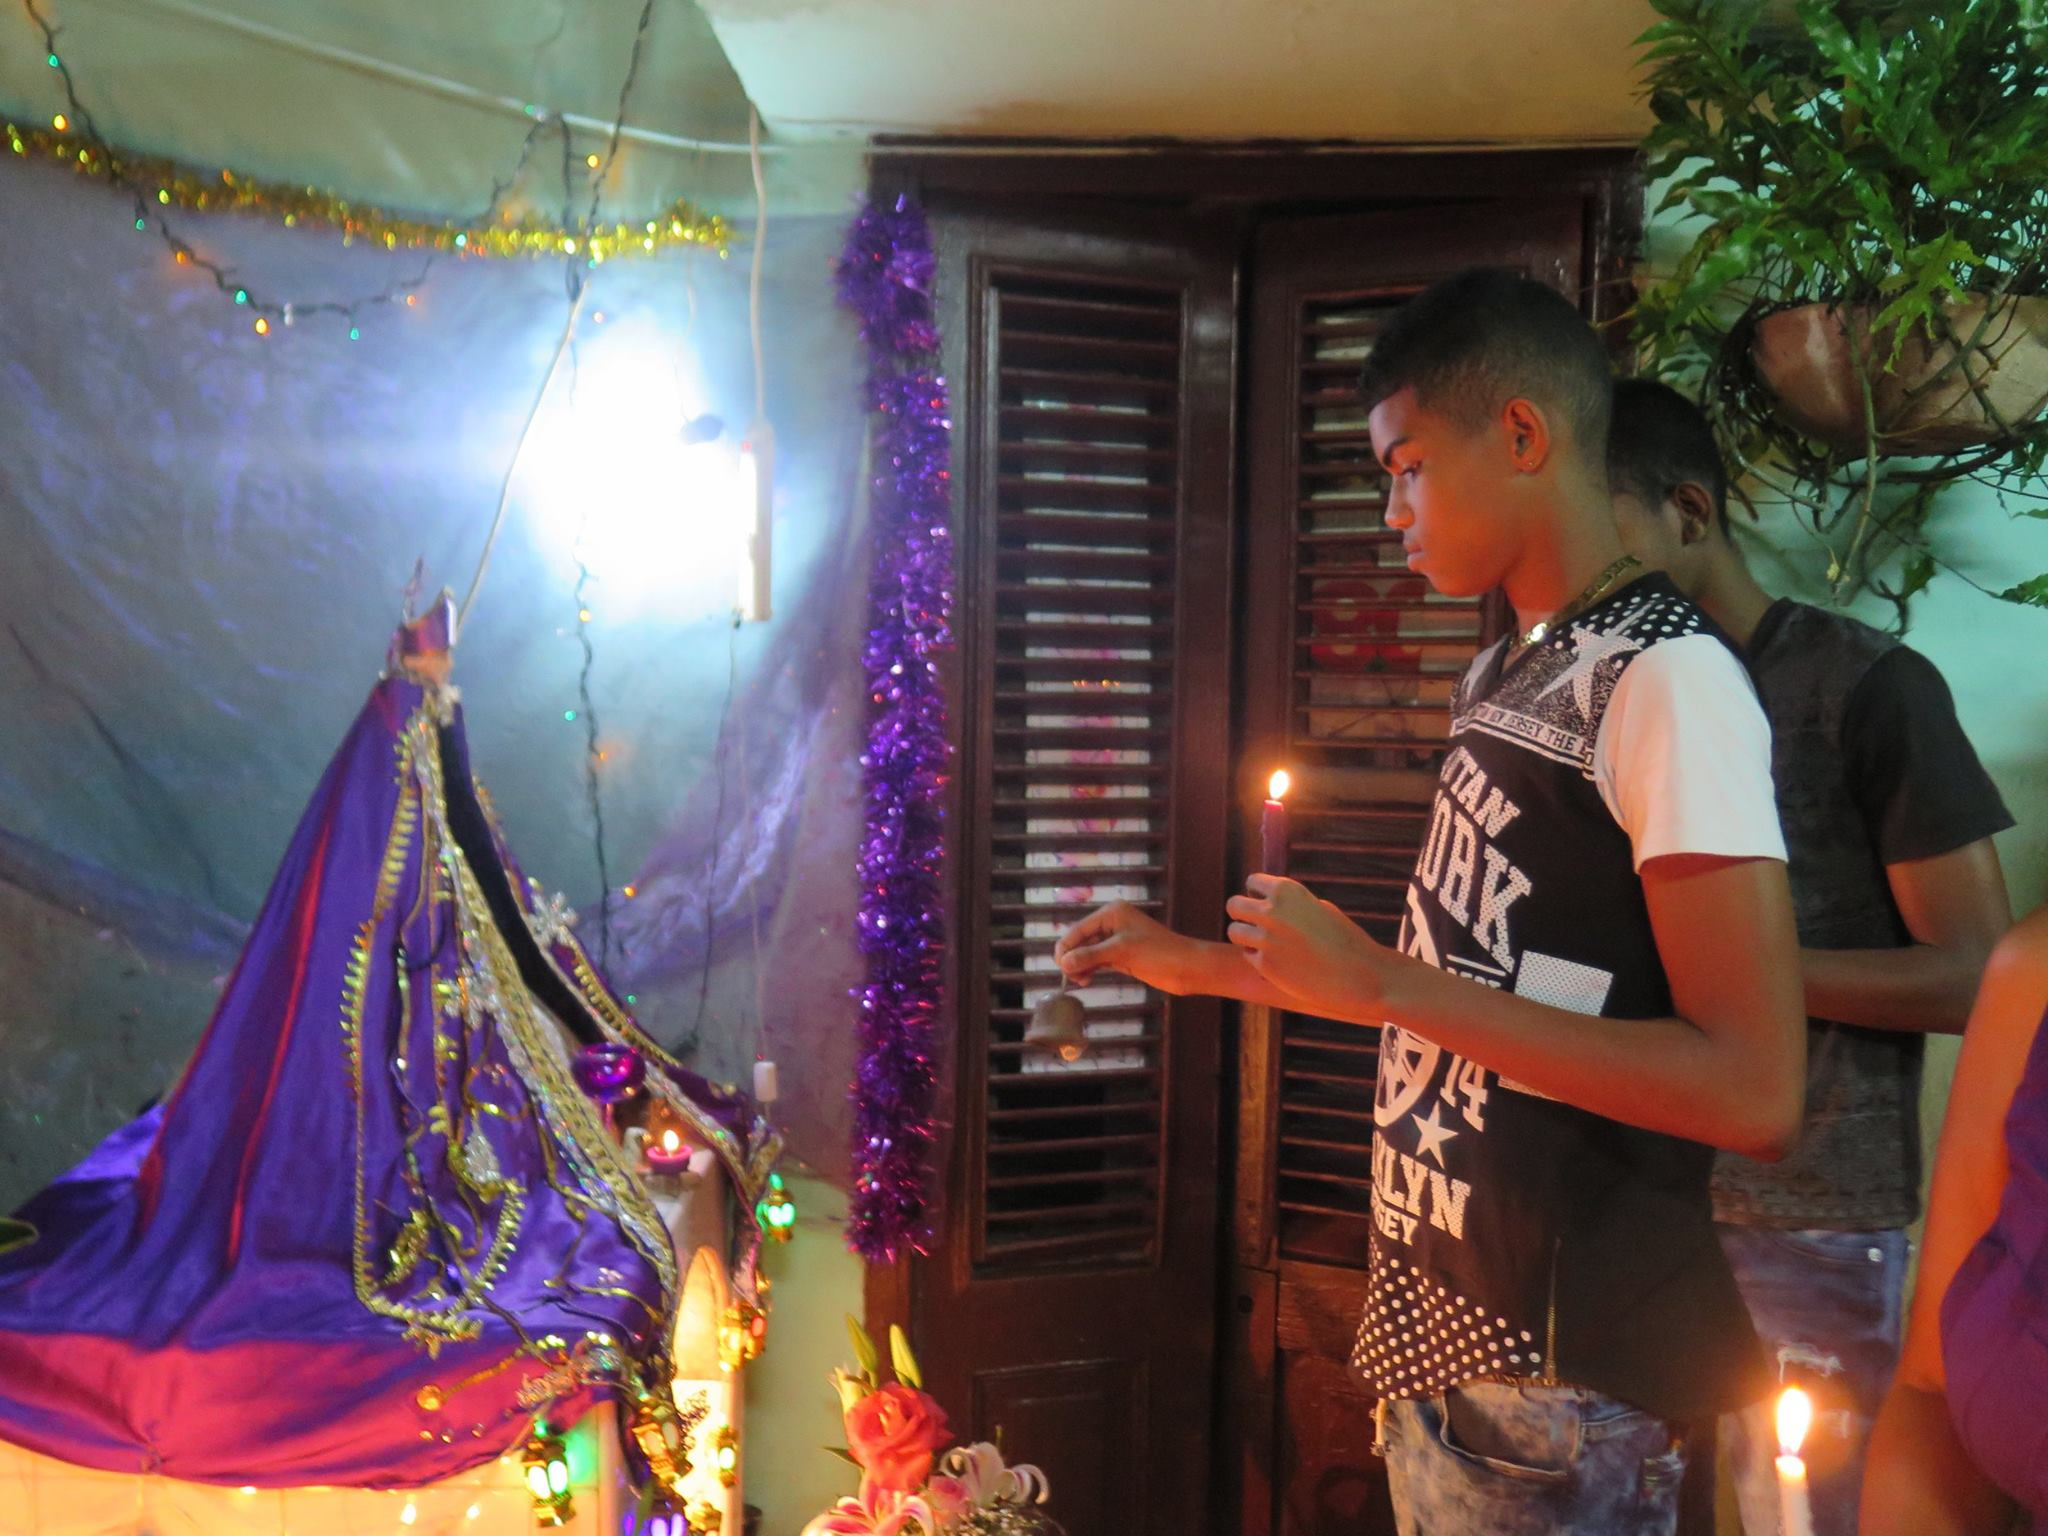 san lazaro, saint lazaro, celebration, worship, religion, santeria, catholicism, catholic, cuba, cuban, cuban streets, cuban celebration, streets of cuba, saint, patron saint of suffering, caribbean island, worshippers, boy, streets of cuba, cuban street altar, altar, candles